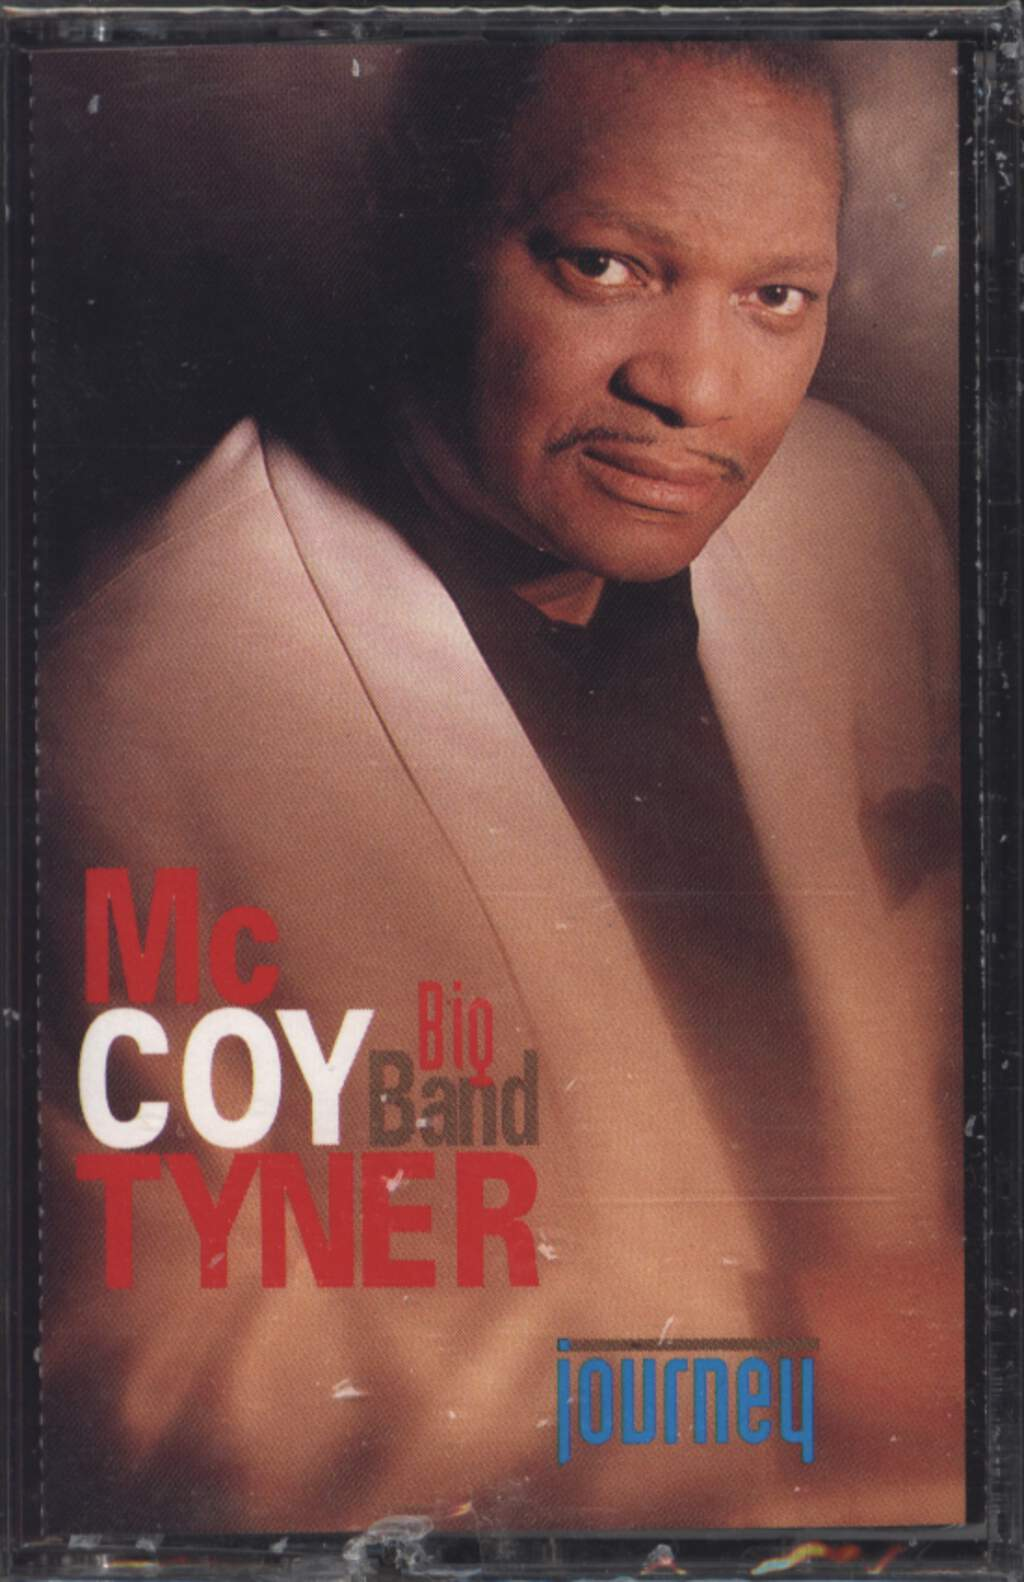 McCoy Tyner Big Band: Journey, Tape